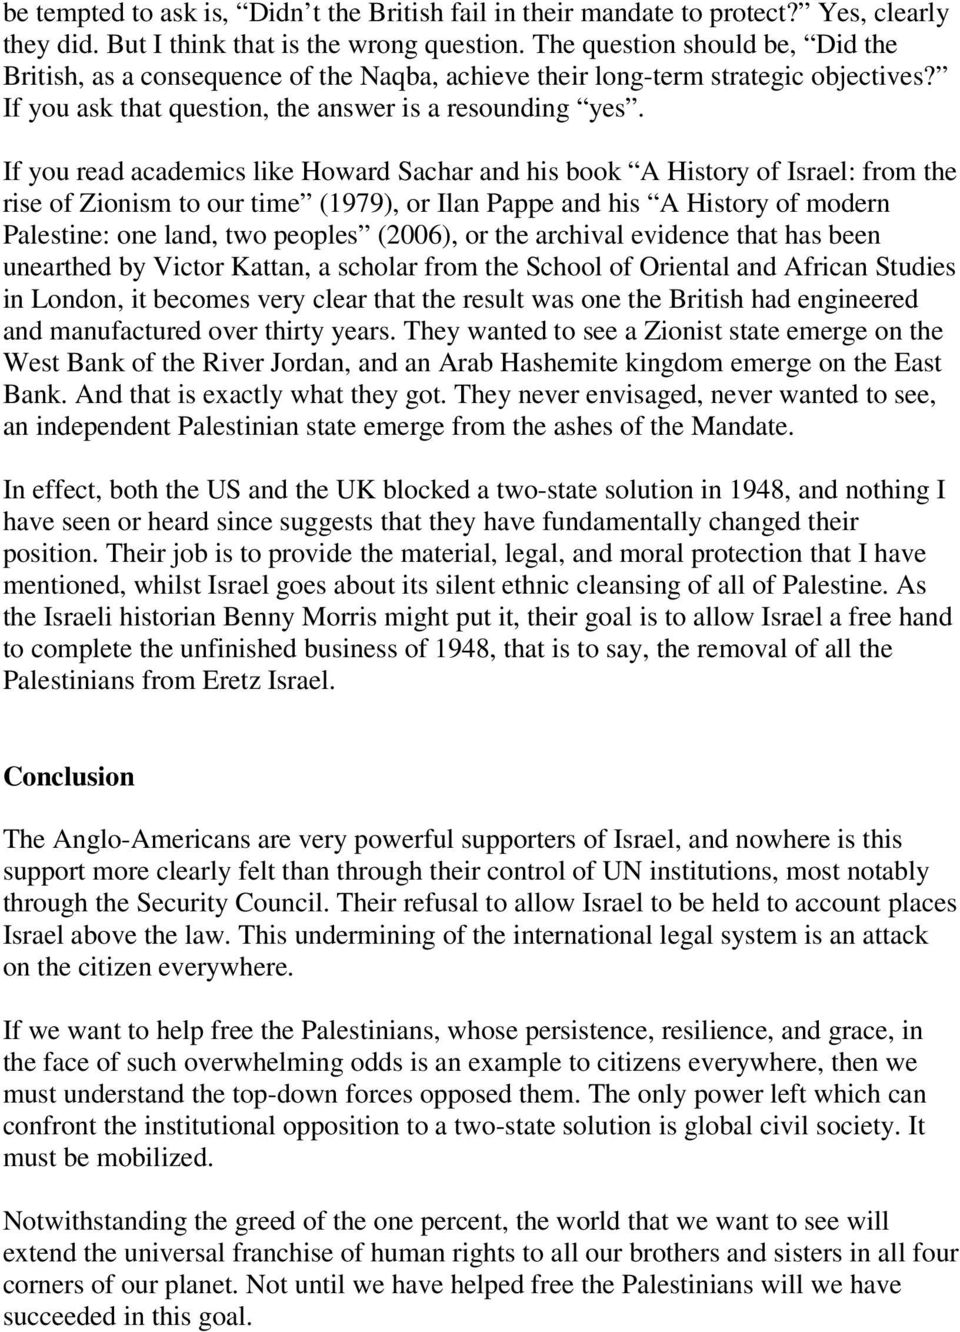 If you read academics like Howard Sachar and his book A History of Israel: from the rise of Zionism to our time (1979), or Ilan Pappe and his A History of modern Palestine: one land, two peoples